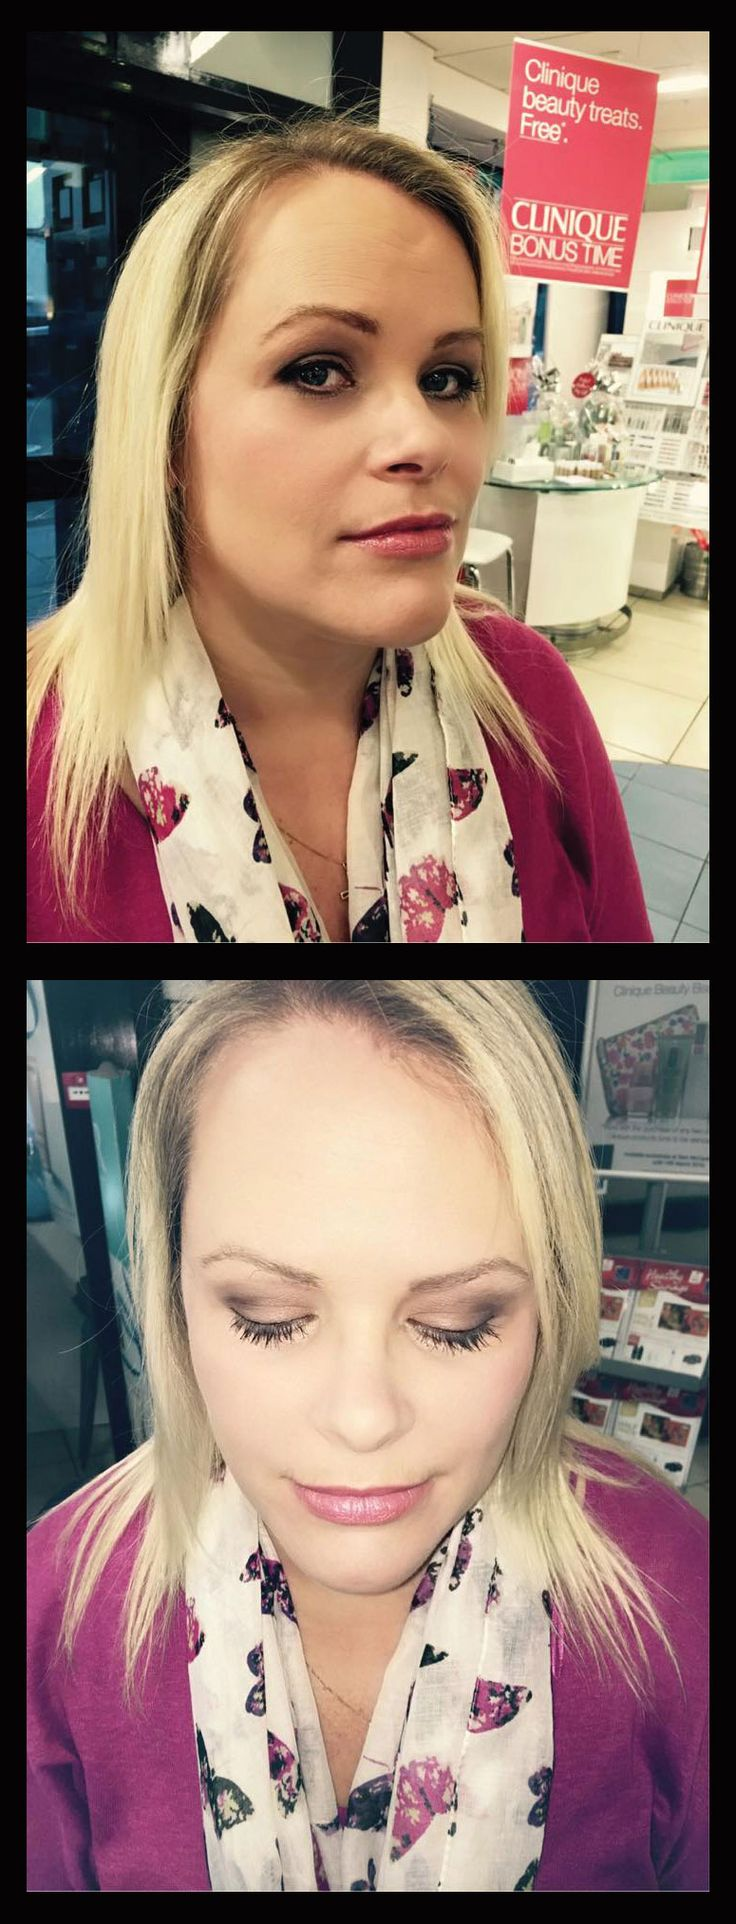 Wedding makeup trial by Aishling (#Lancome Consultant) in our Kilkenny store.  To book, or for more info on makeovers at Sam McCauleys Kilkenny call 056 7750122. #SamMcCauleys